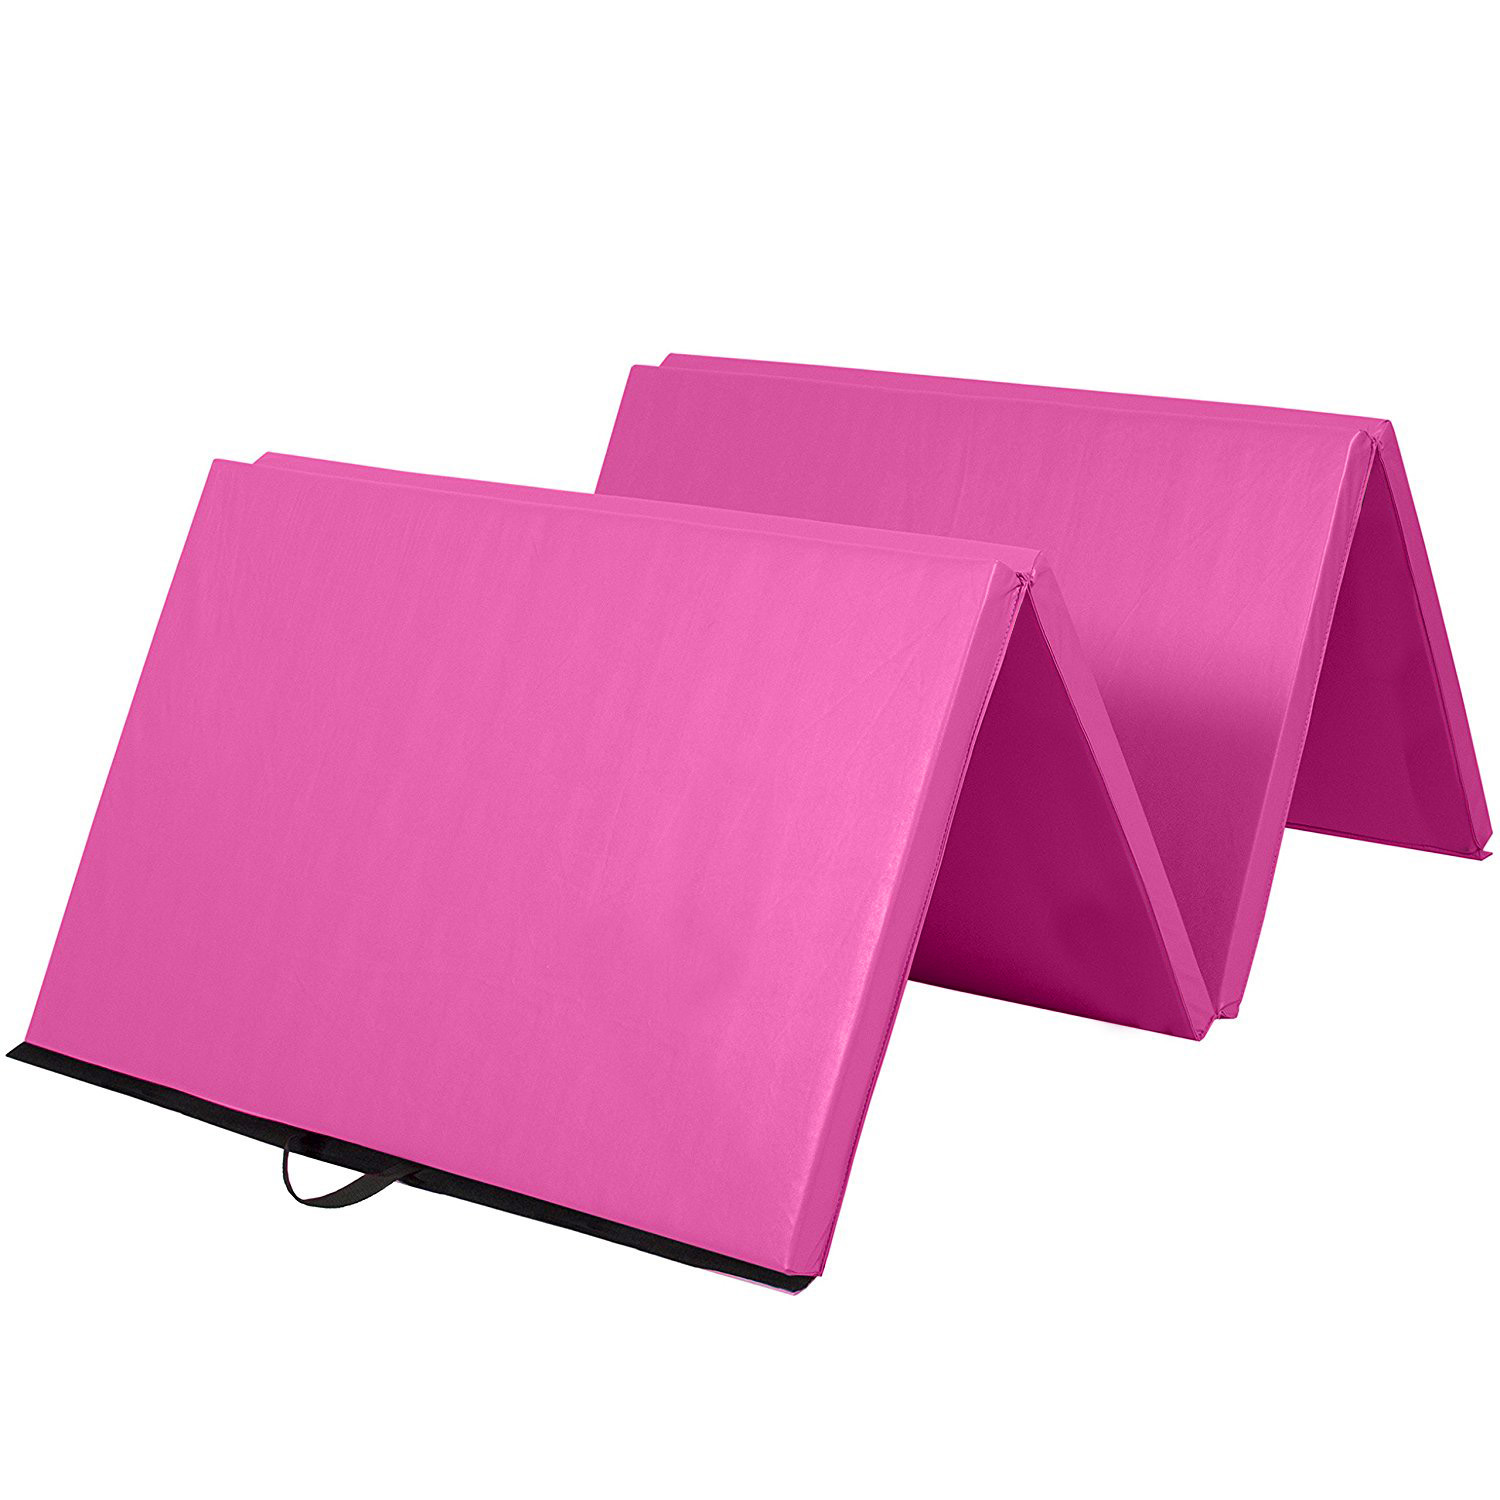 tumbling mats gymnastic with l mat pump x inflatable track gymnastics pink product air